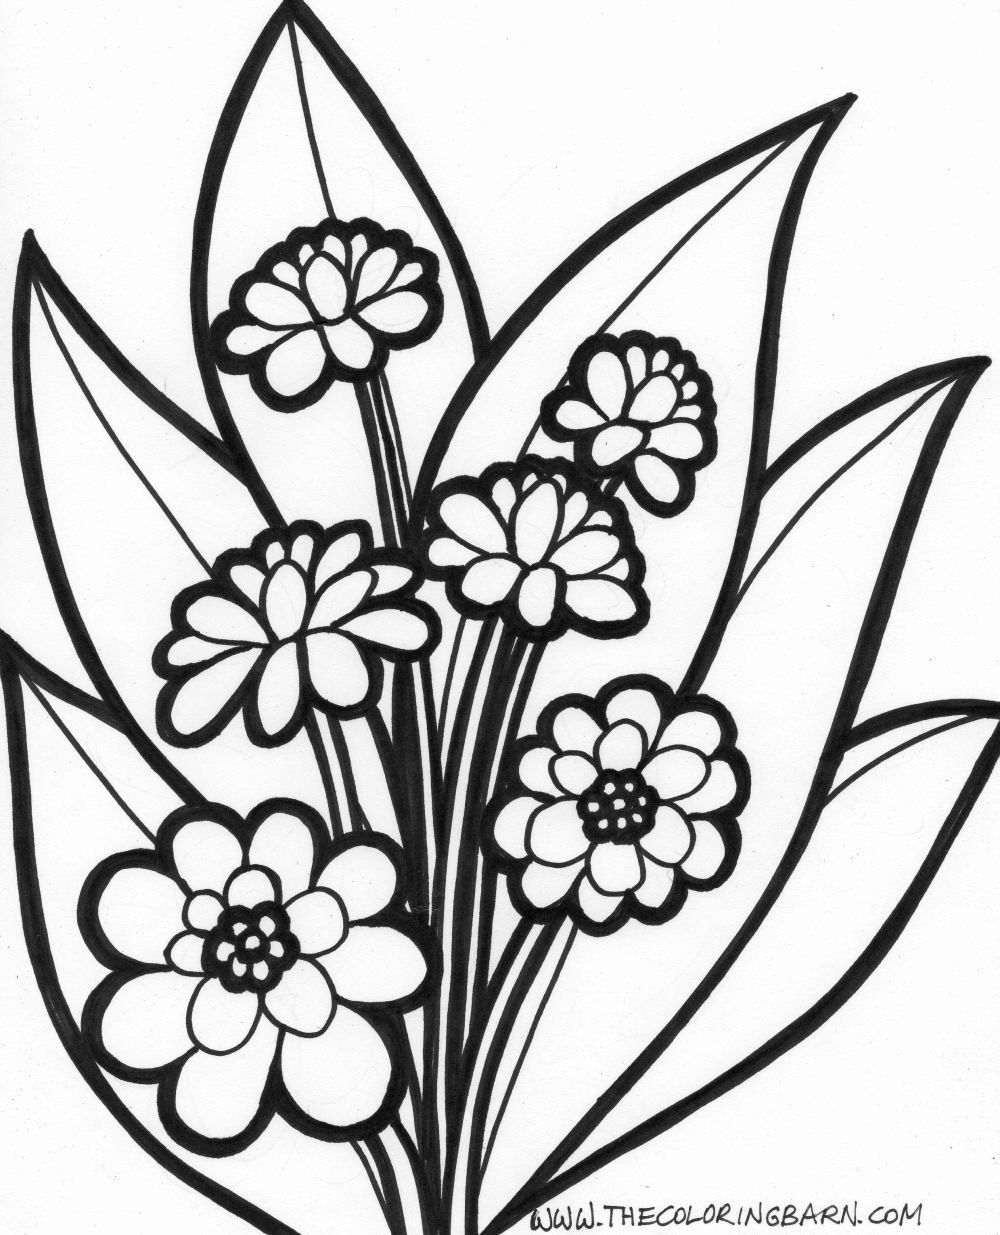 Pin By Tania Cortez On Beautiful Nature Printable Flower Coloring Pages Flower Coloring Pages Garden Coloring Pages